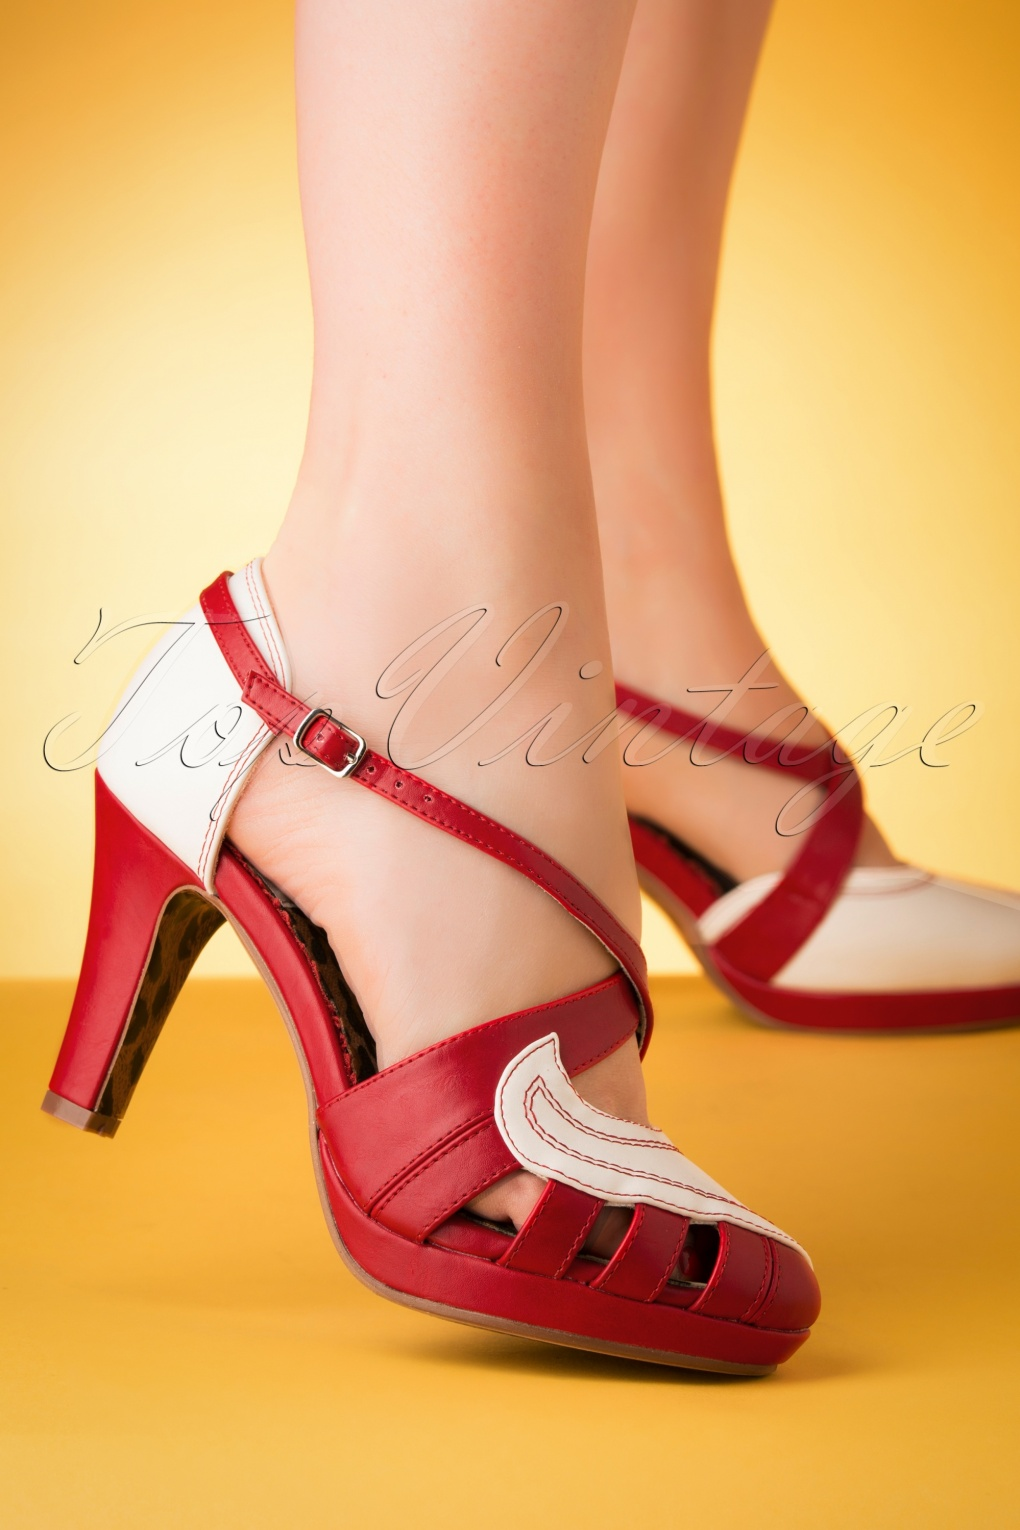 687591054be4 1950s Shoe Styles- History and Shopping Guide